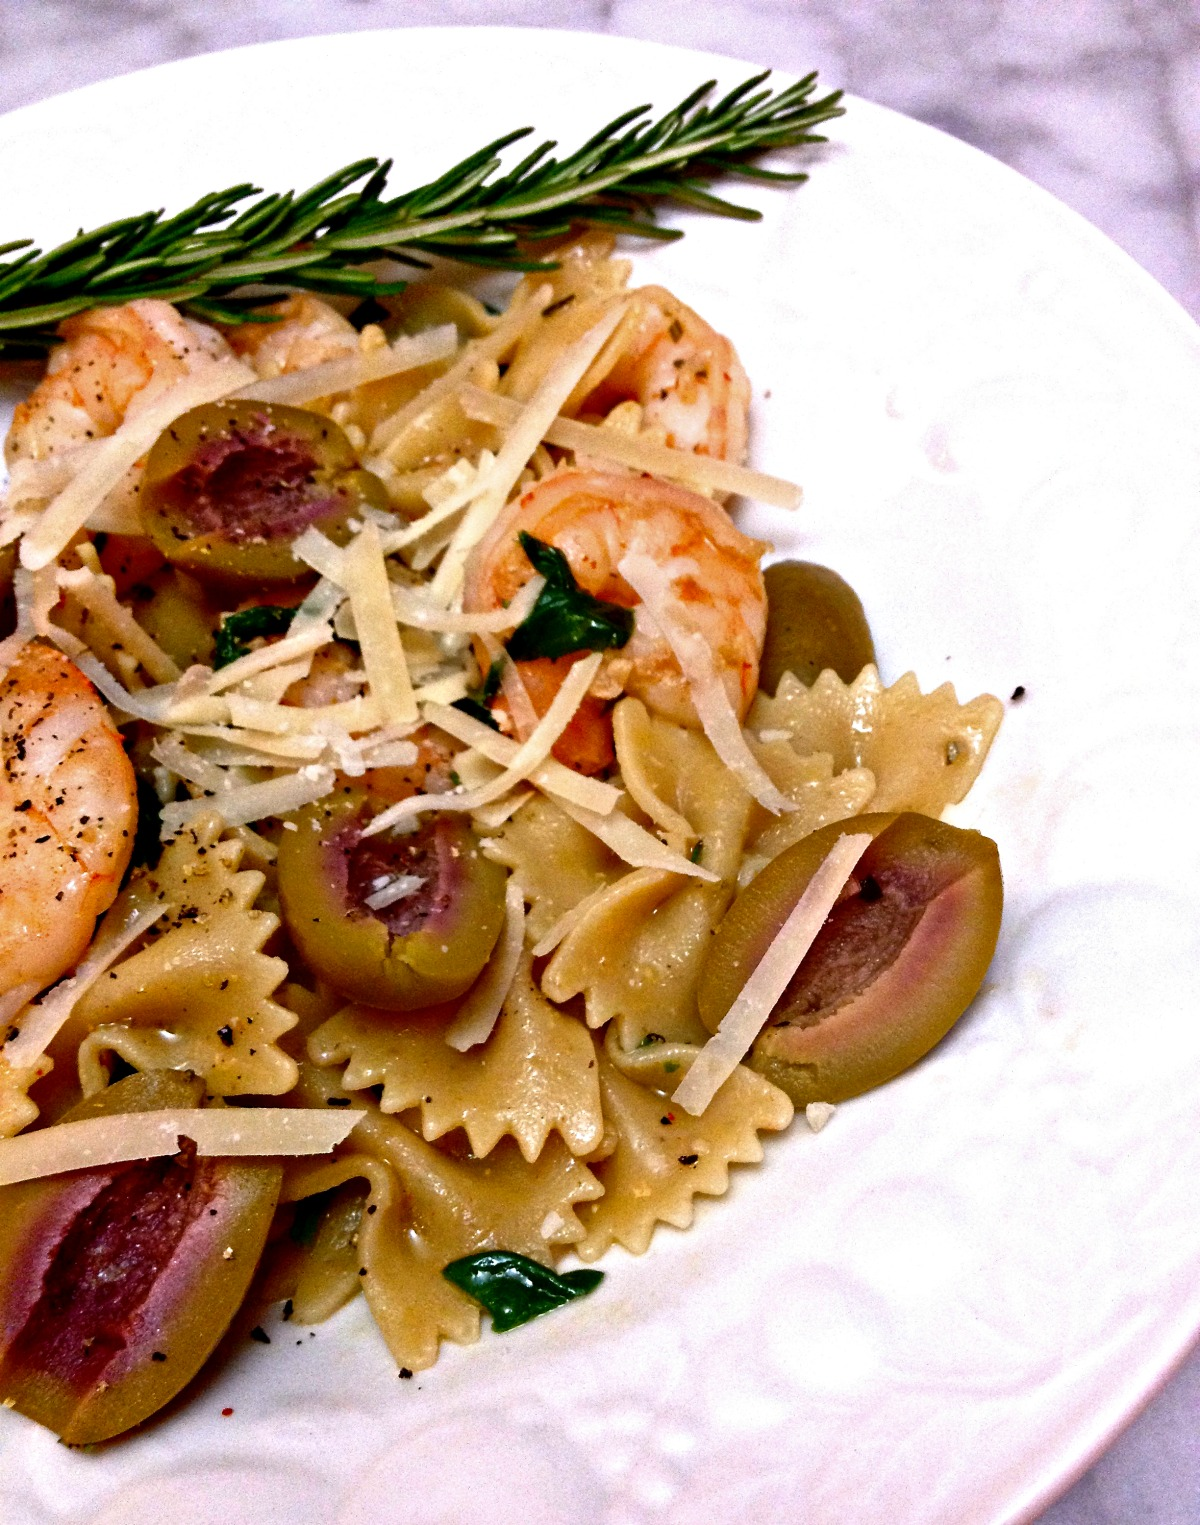 bowtie pasta with shrimp, olives, and rosemary :: by radish*rose